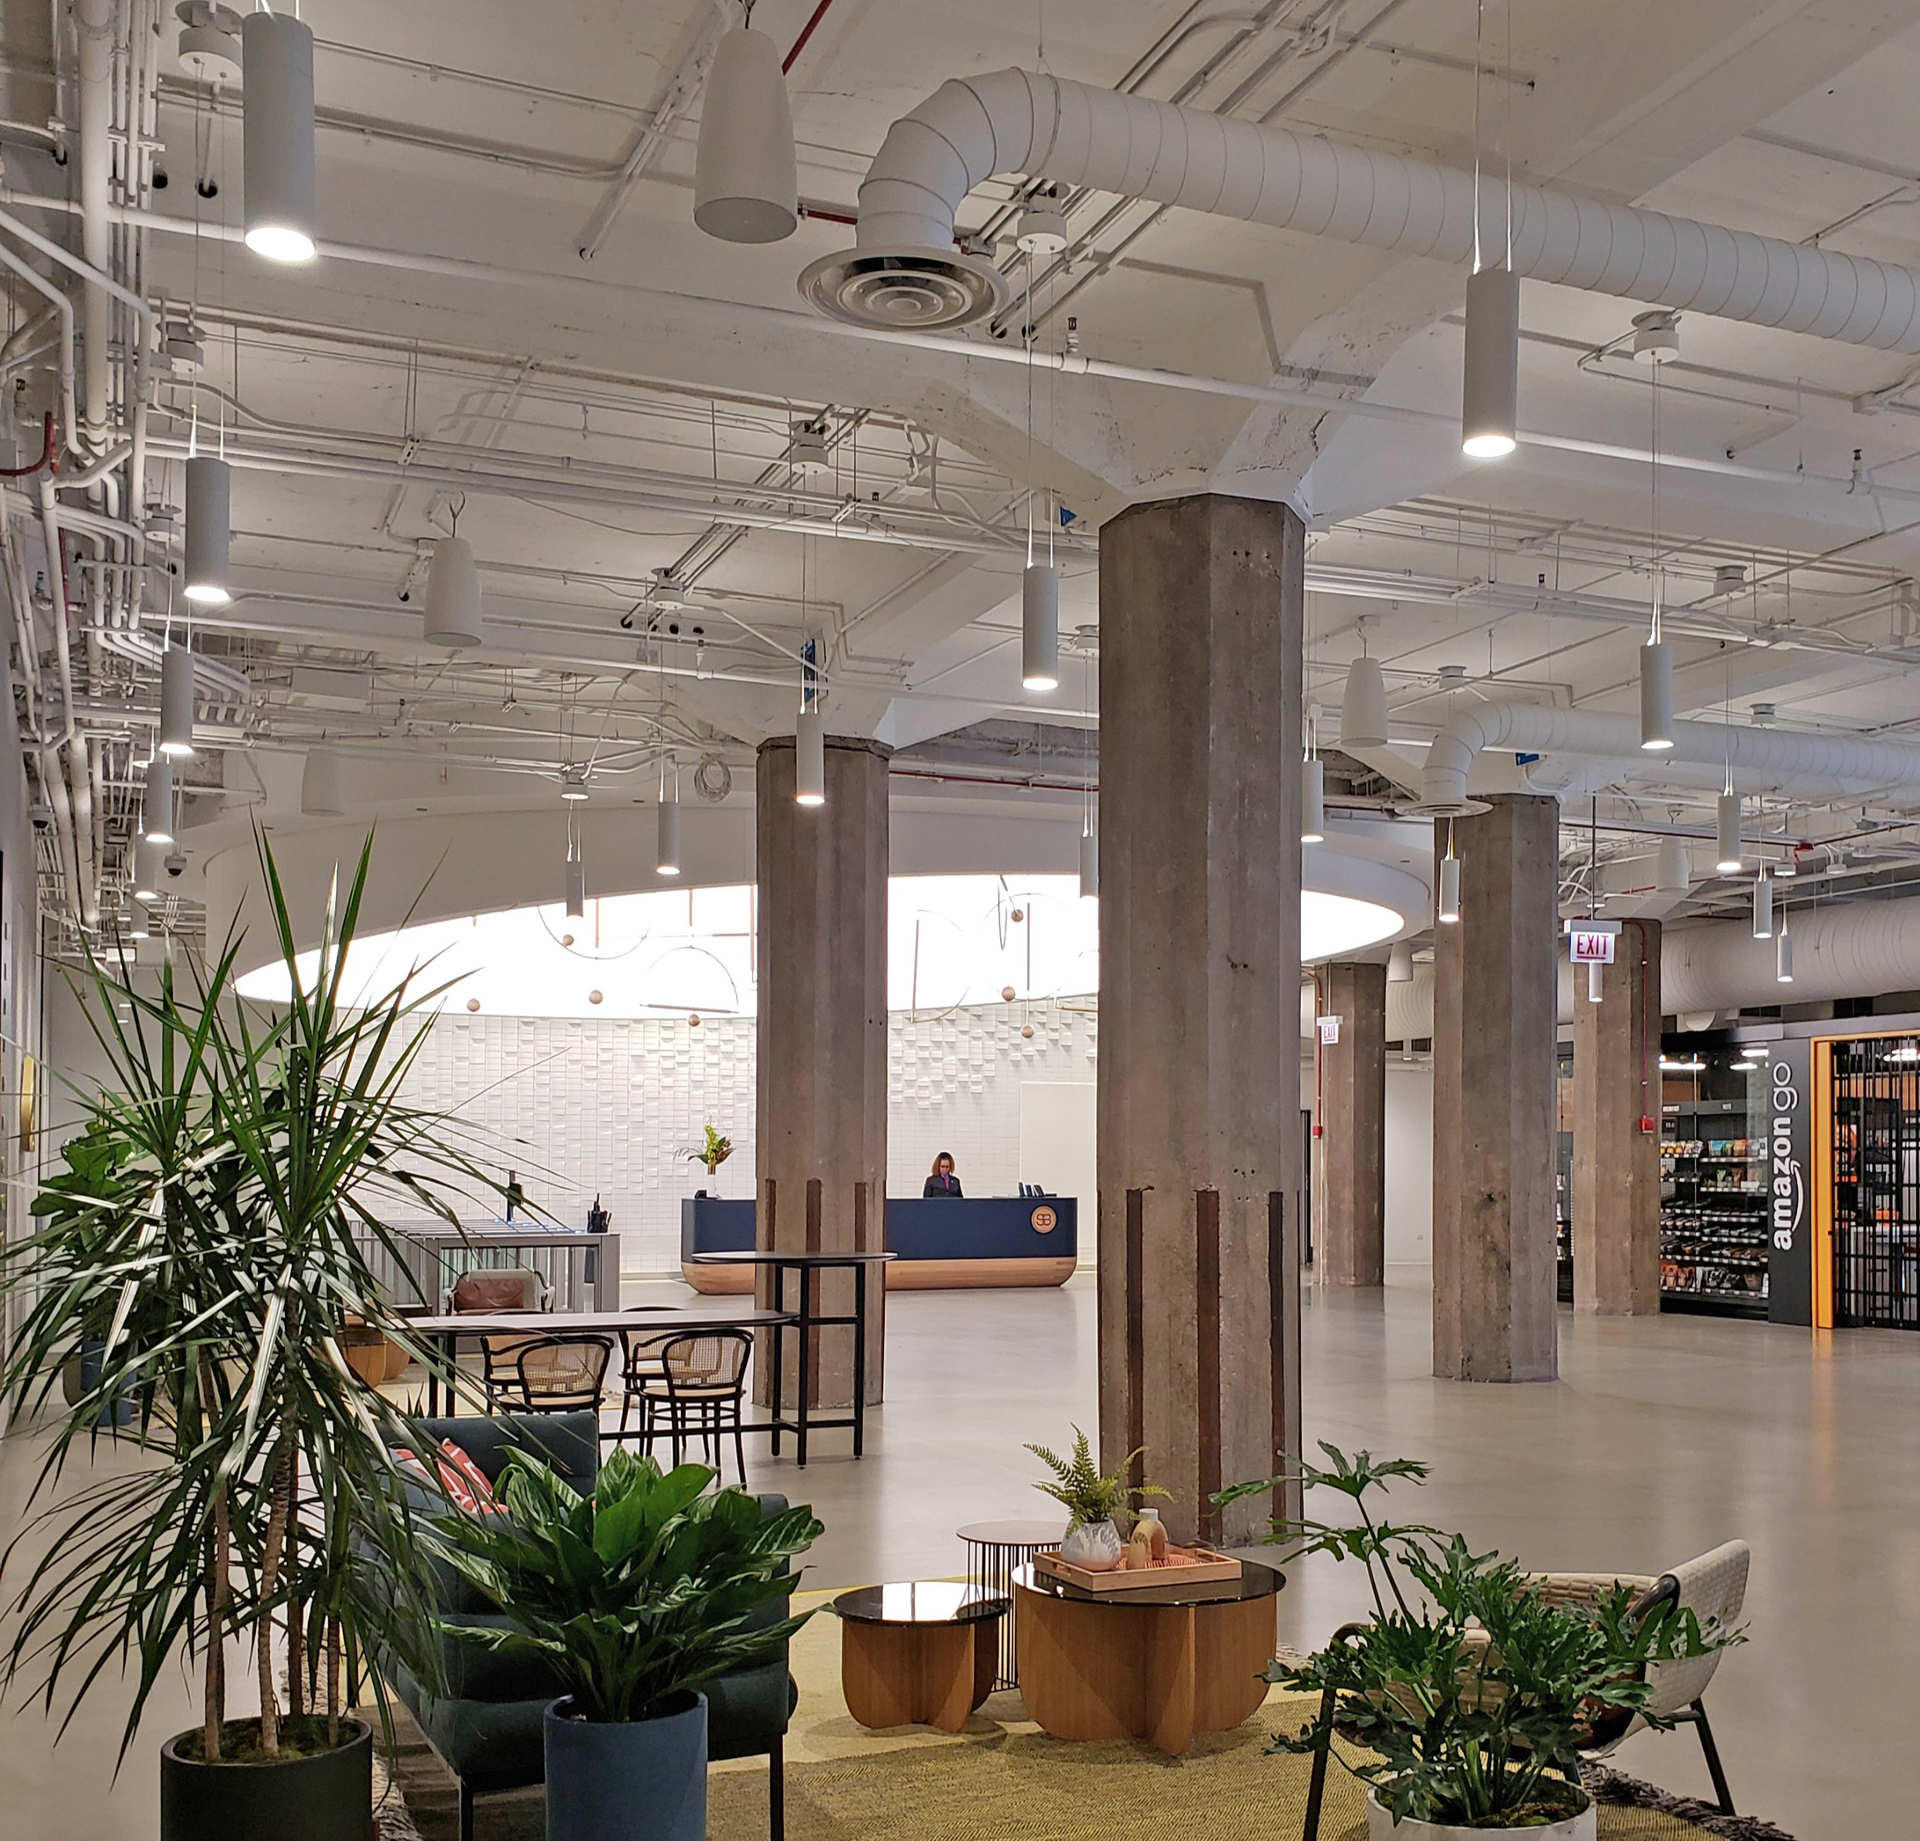 Enjoy the natural light in the waiting area of this historic office building.  The stone pillars and the exposed ceiling add to the mid-century industrial design.